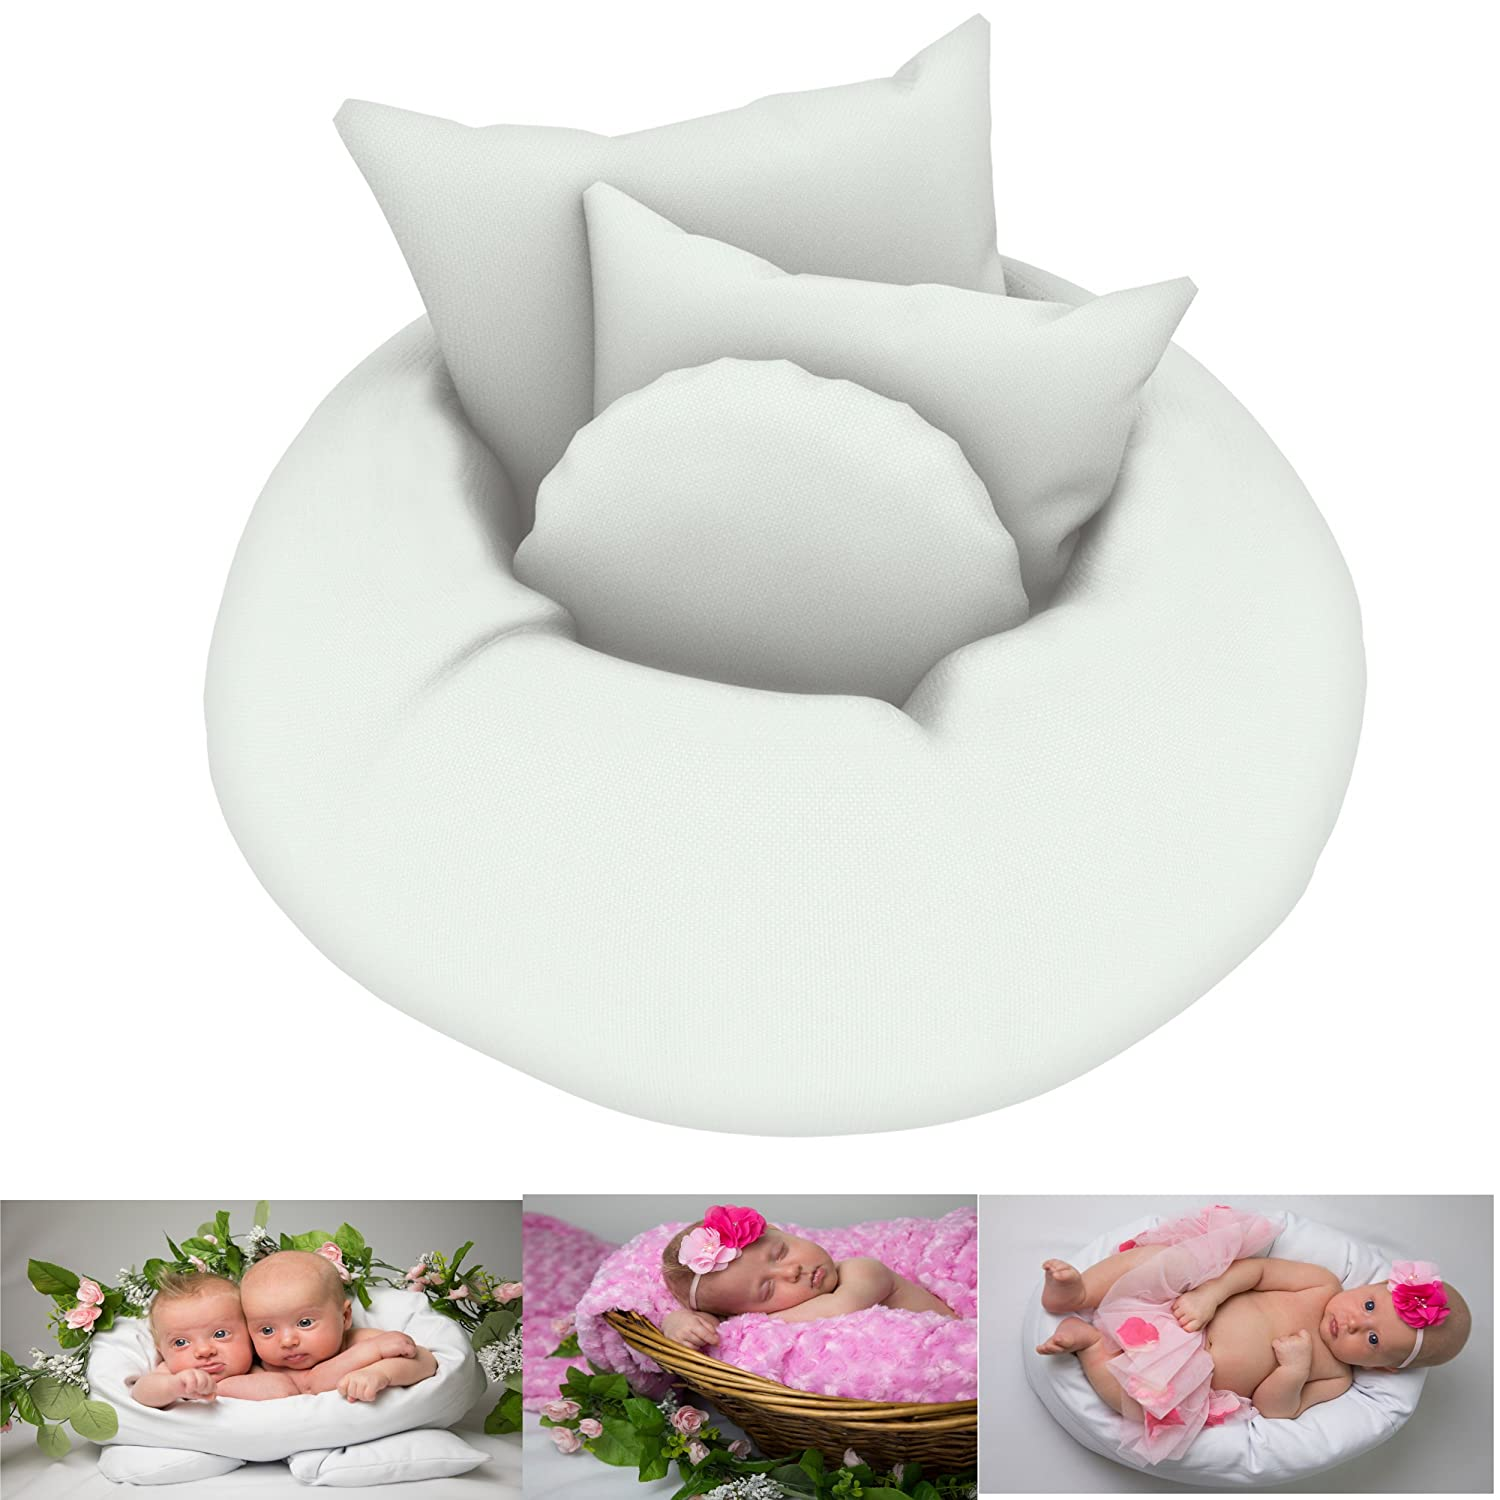 Amazon com newborn posing pillow set of 4 pcs baby photography props improved version donut shaped basket filler or photo prop for babies infants